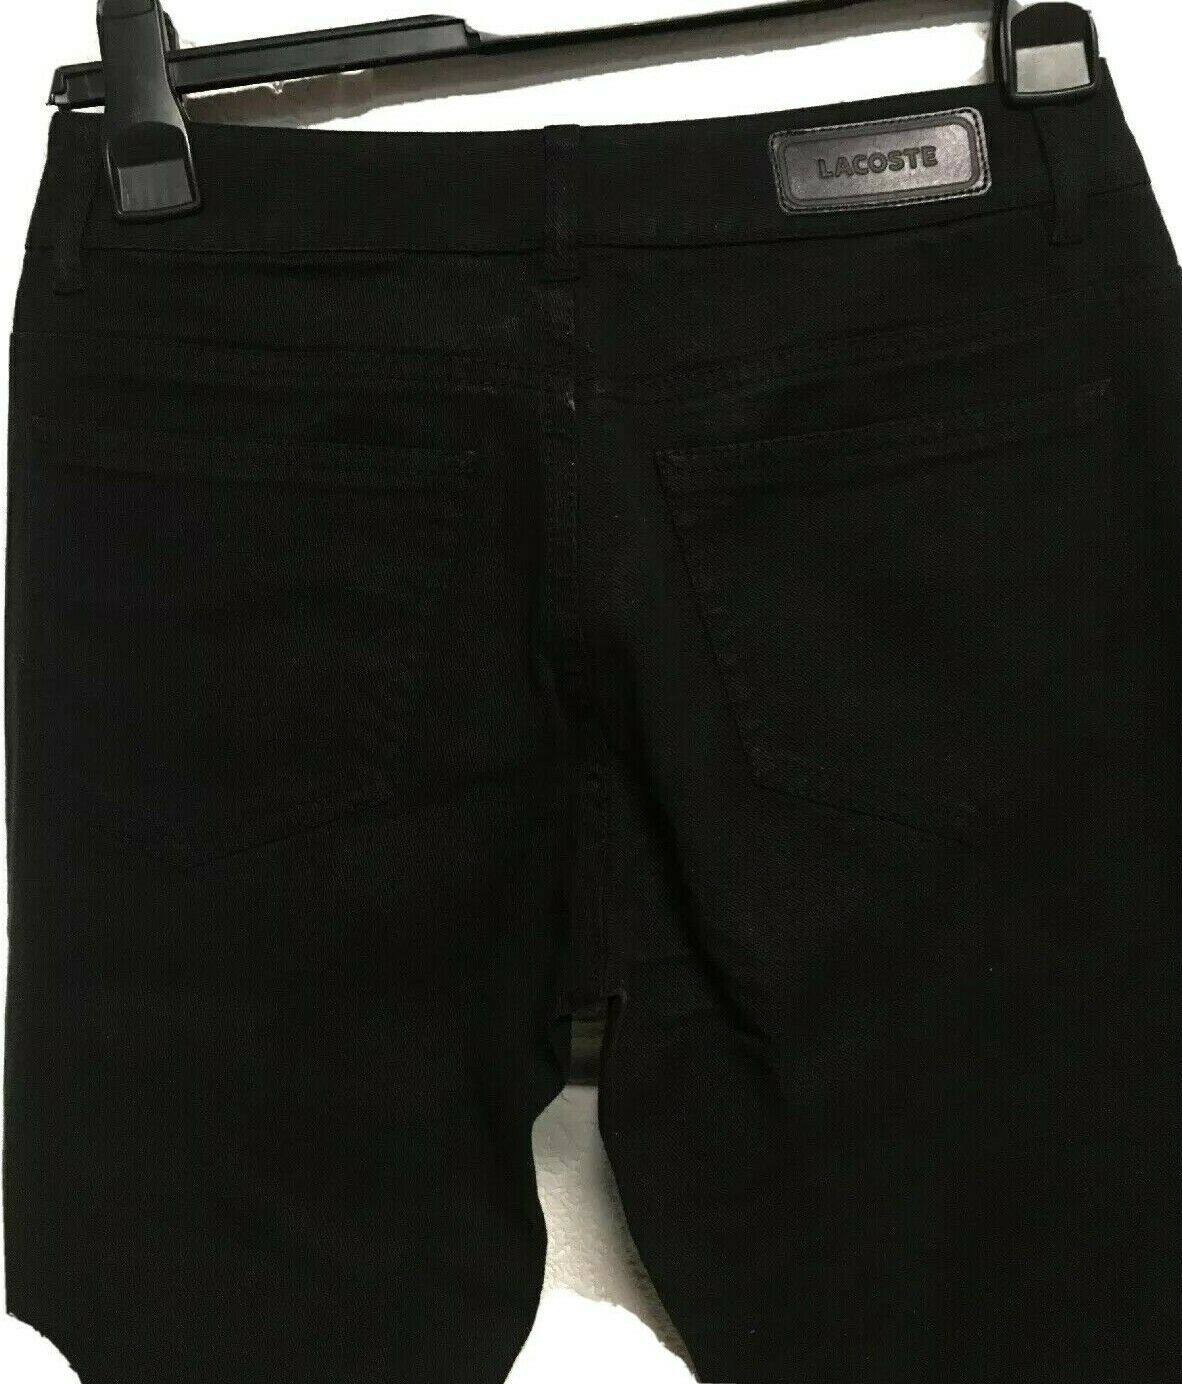 Mujer jeans negros Lacoste Talla 38/UK 10/28